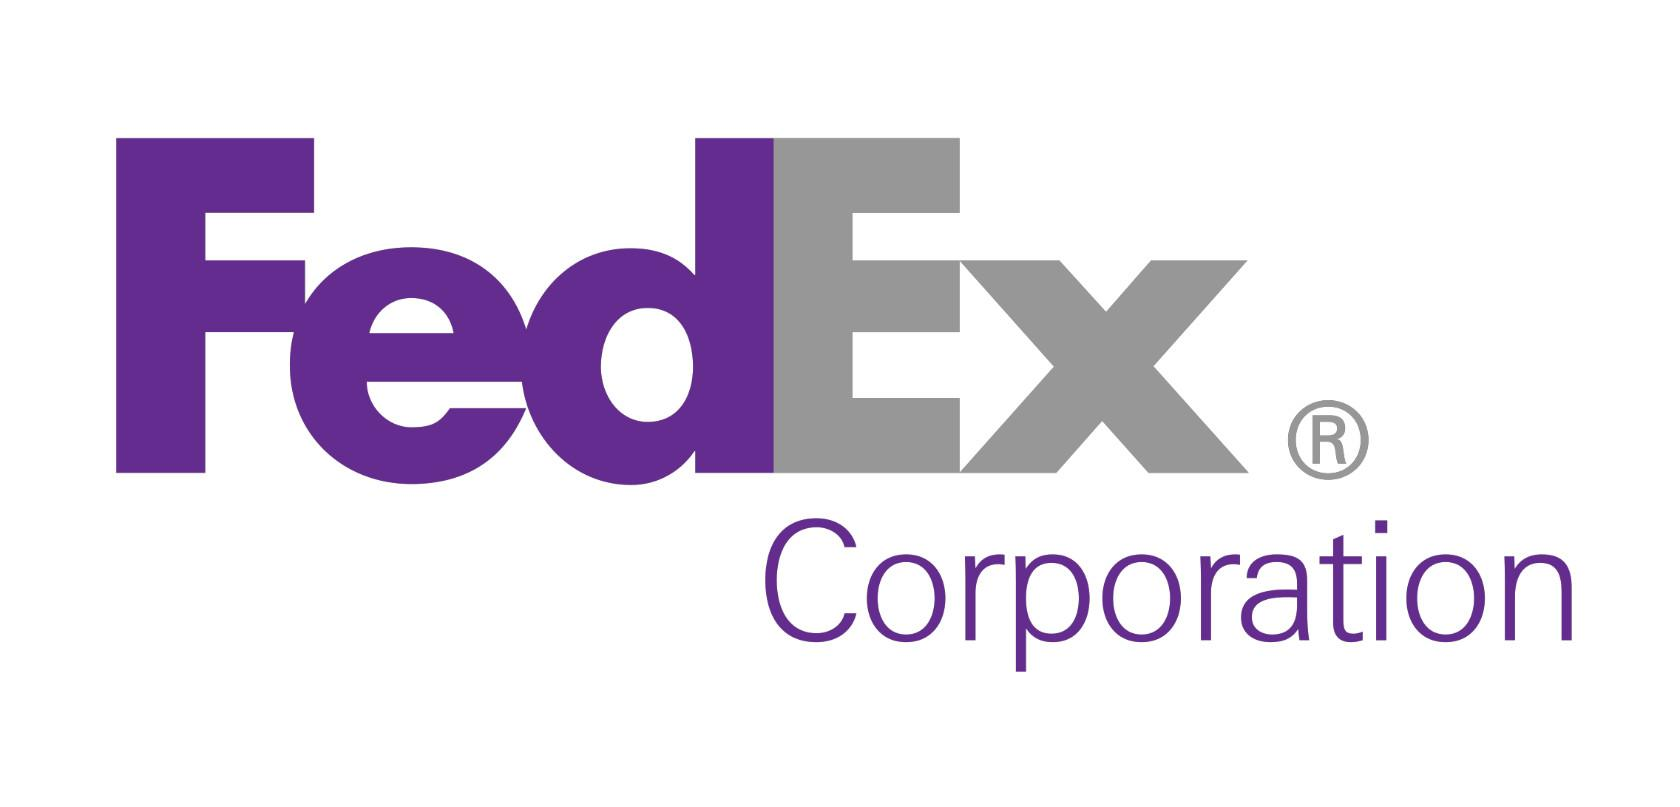 The FedEx logo uses design fundamental white space to create a hidden arrow.